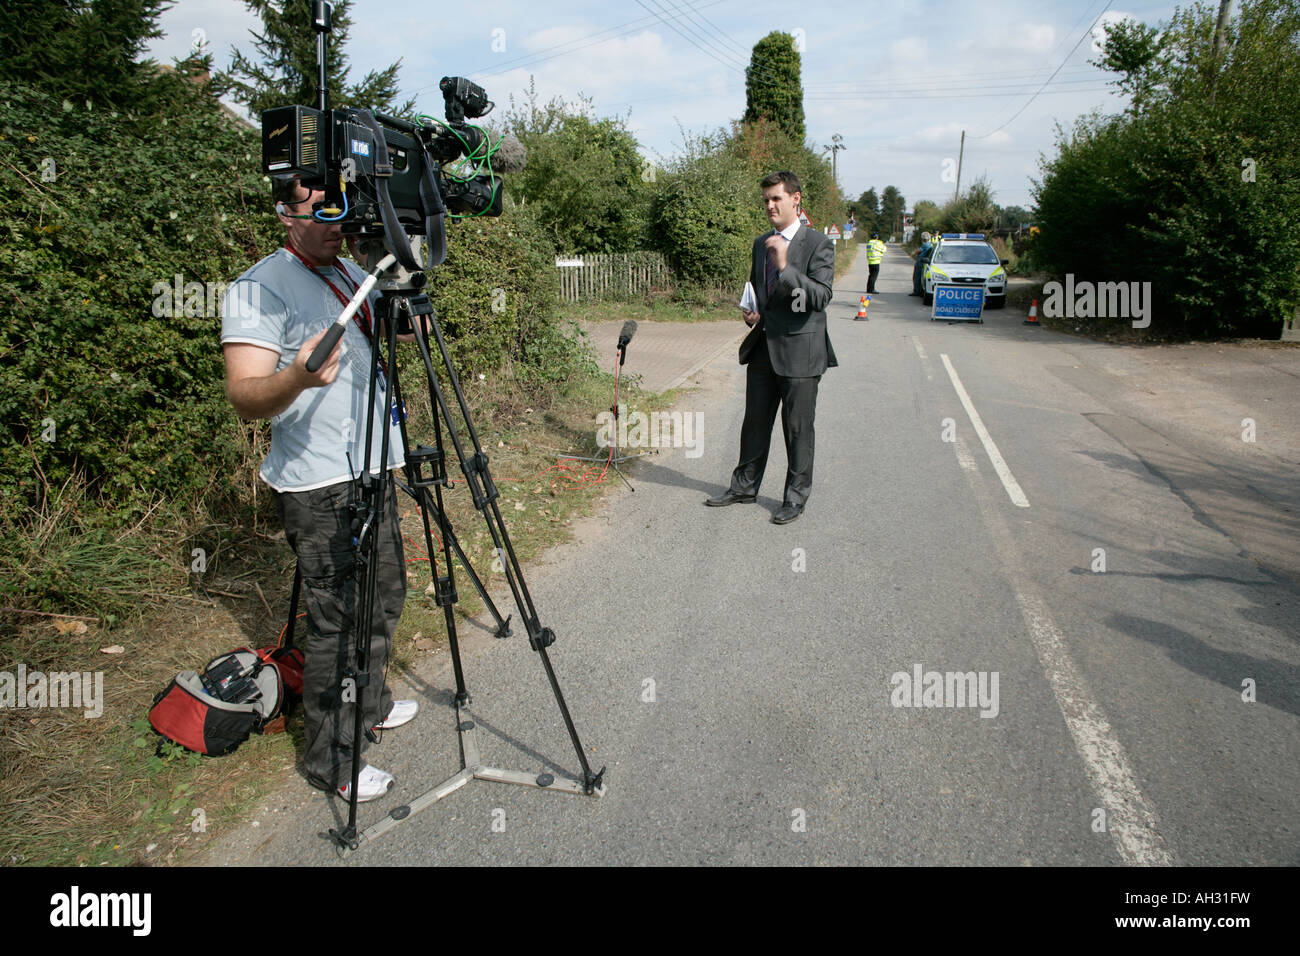 An ITN News crew prepares to send a live feed to report on